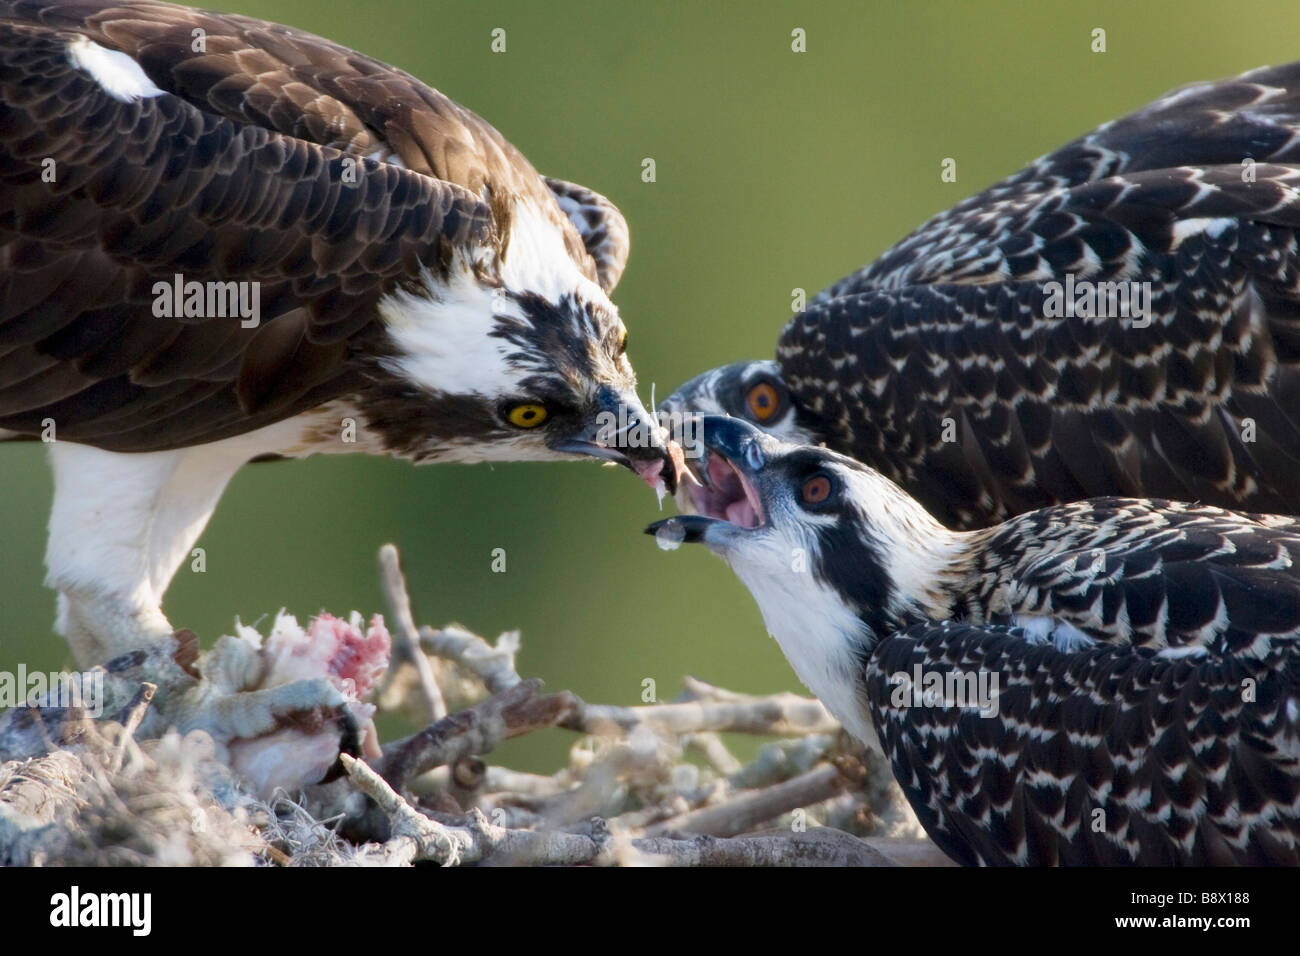 Osprey (Pandion haliaetus) feeding its young ones - Stock Image